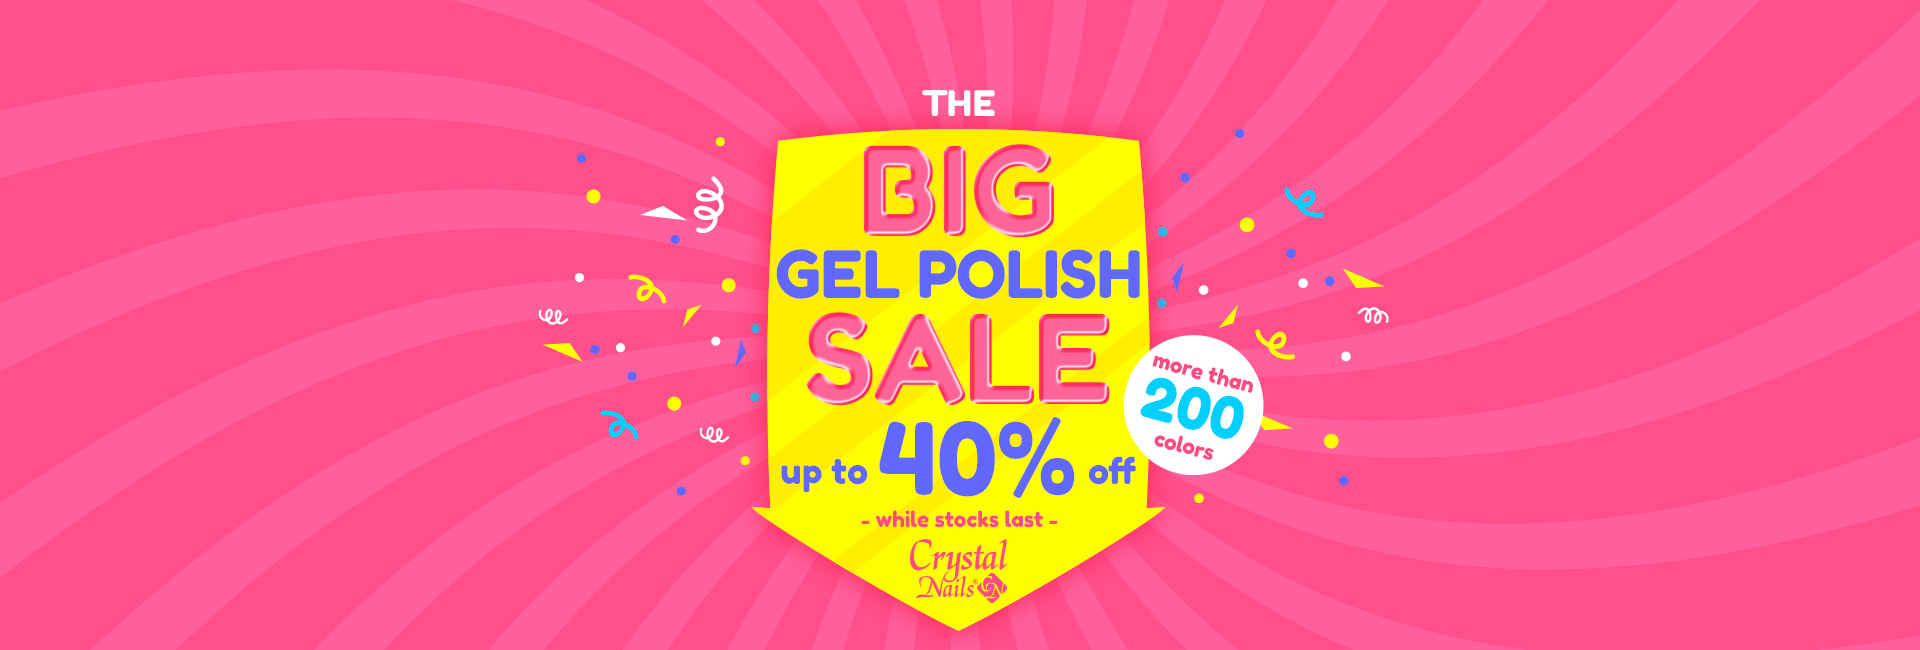 Big Gel Polish Sale